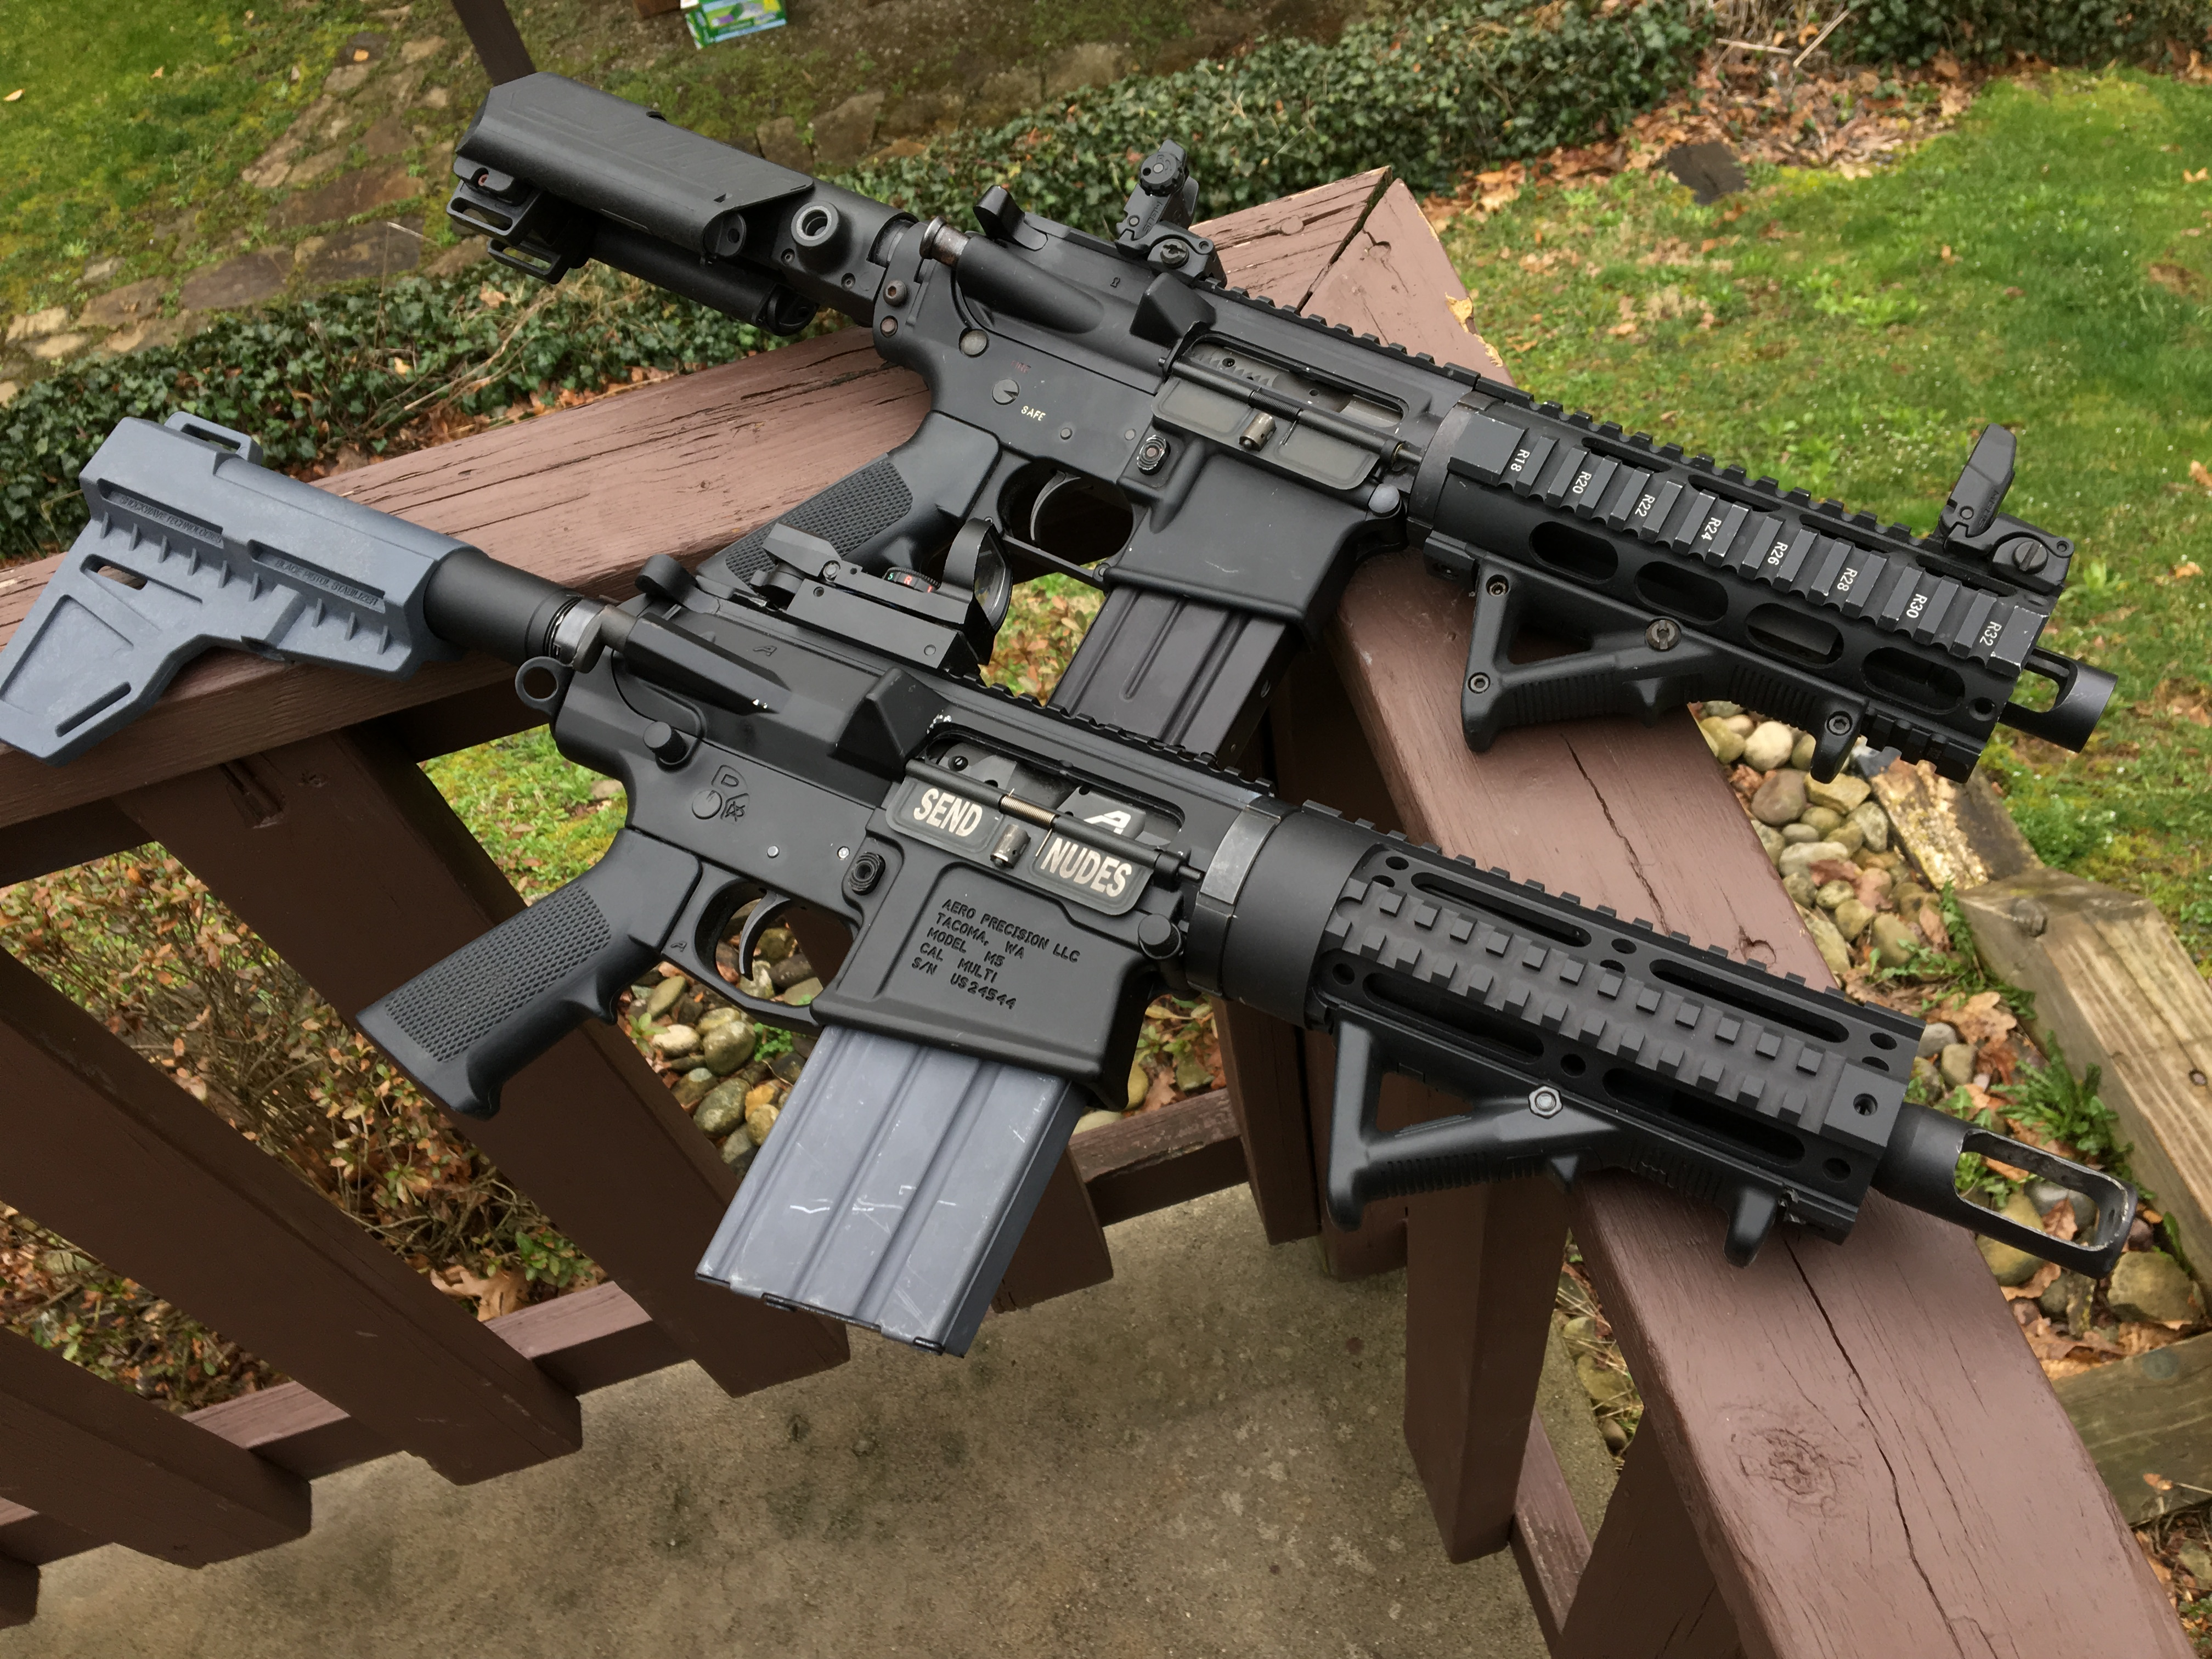 can you hear me now the trials and tribulations of building an ar